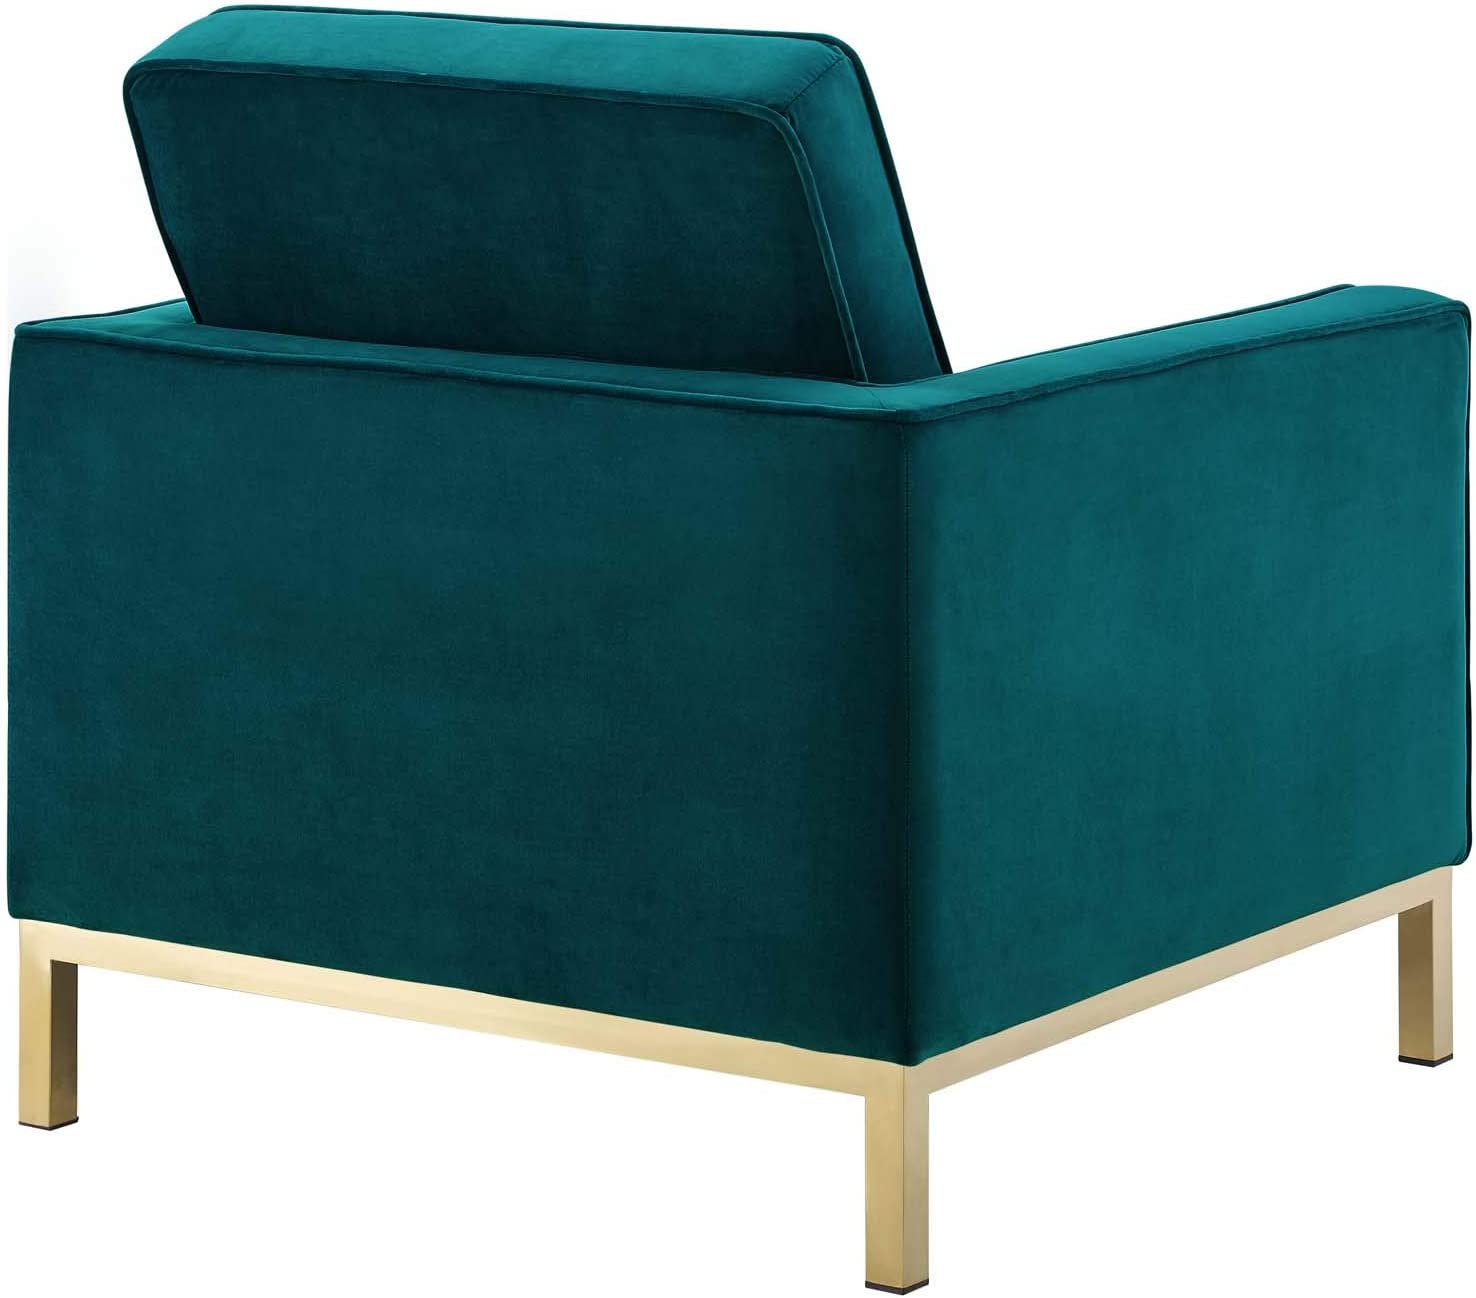 Modway Loft Tufted Button Performance Velvet Upholstered Accent Lounge Arm Chair in Gold Teal